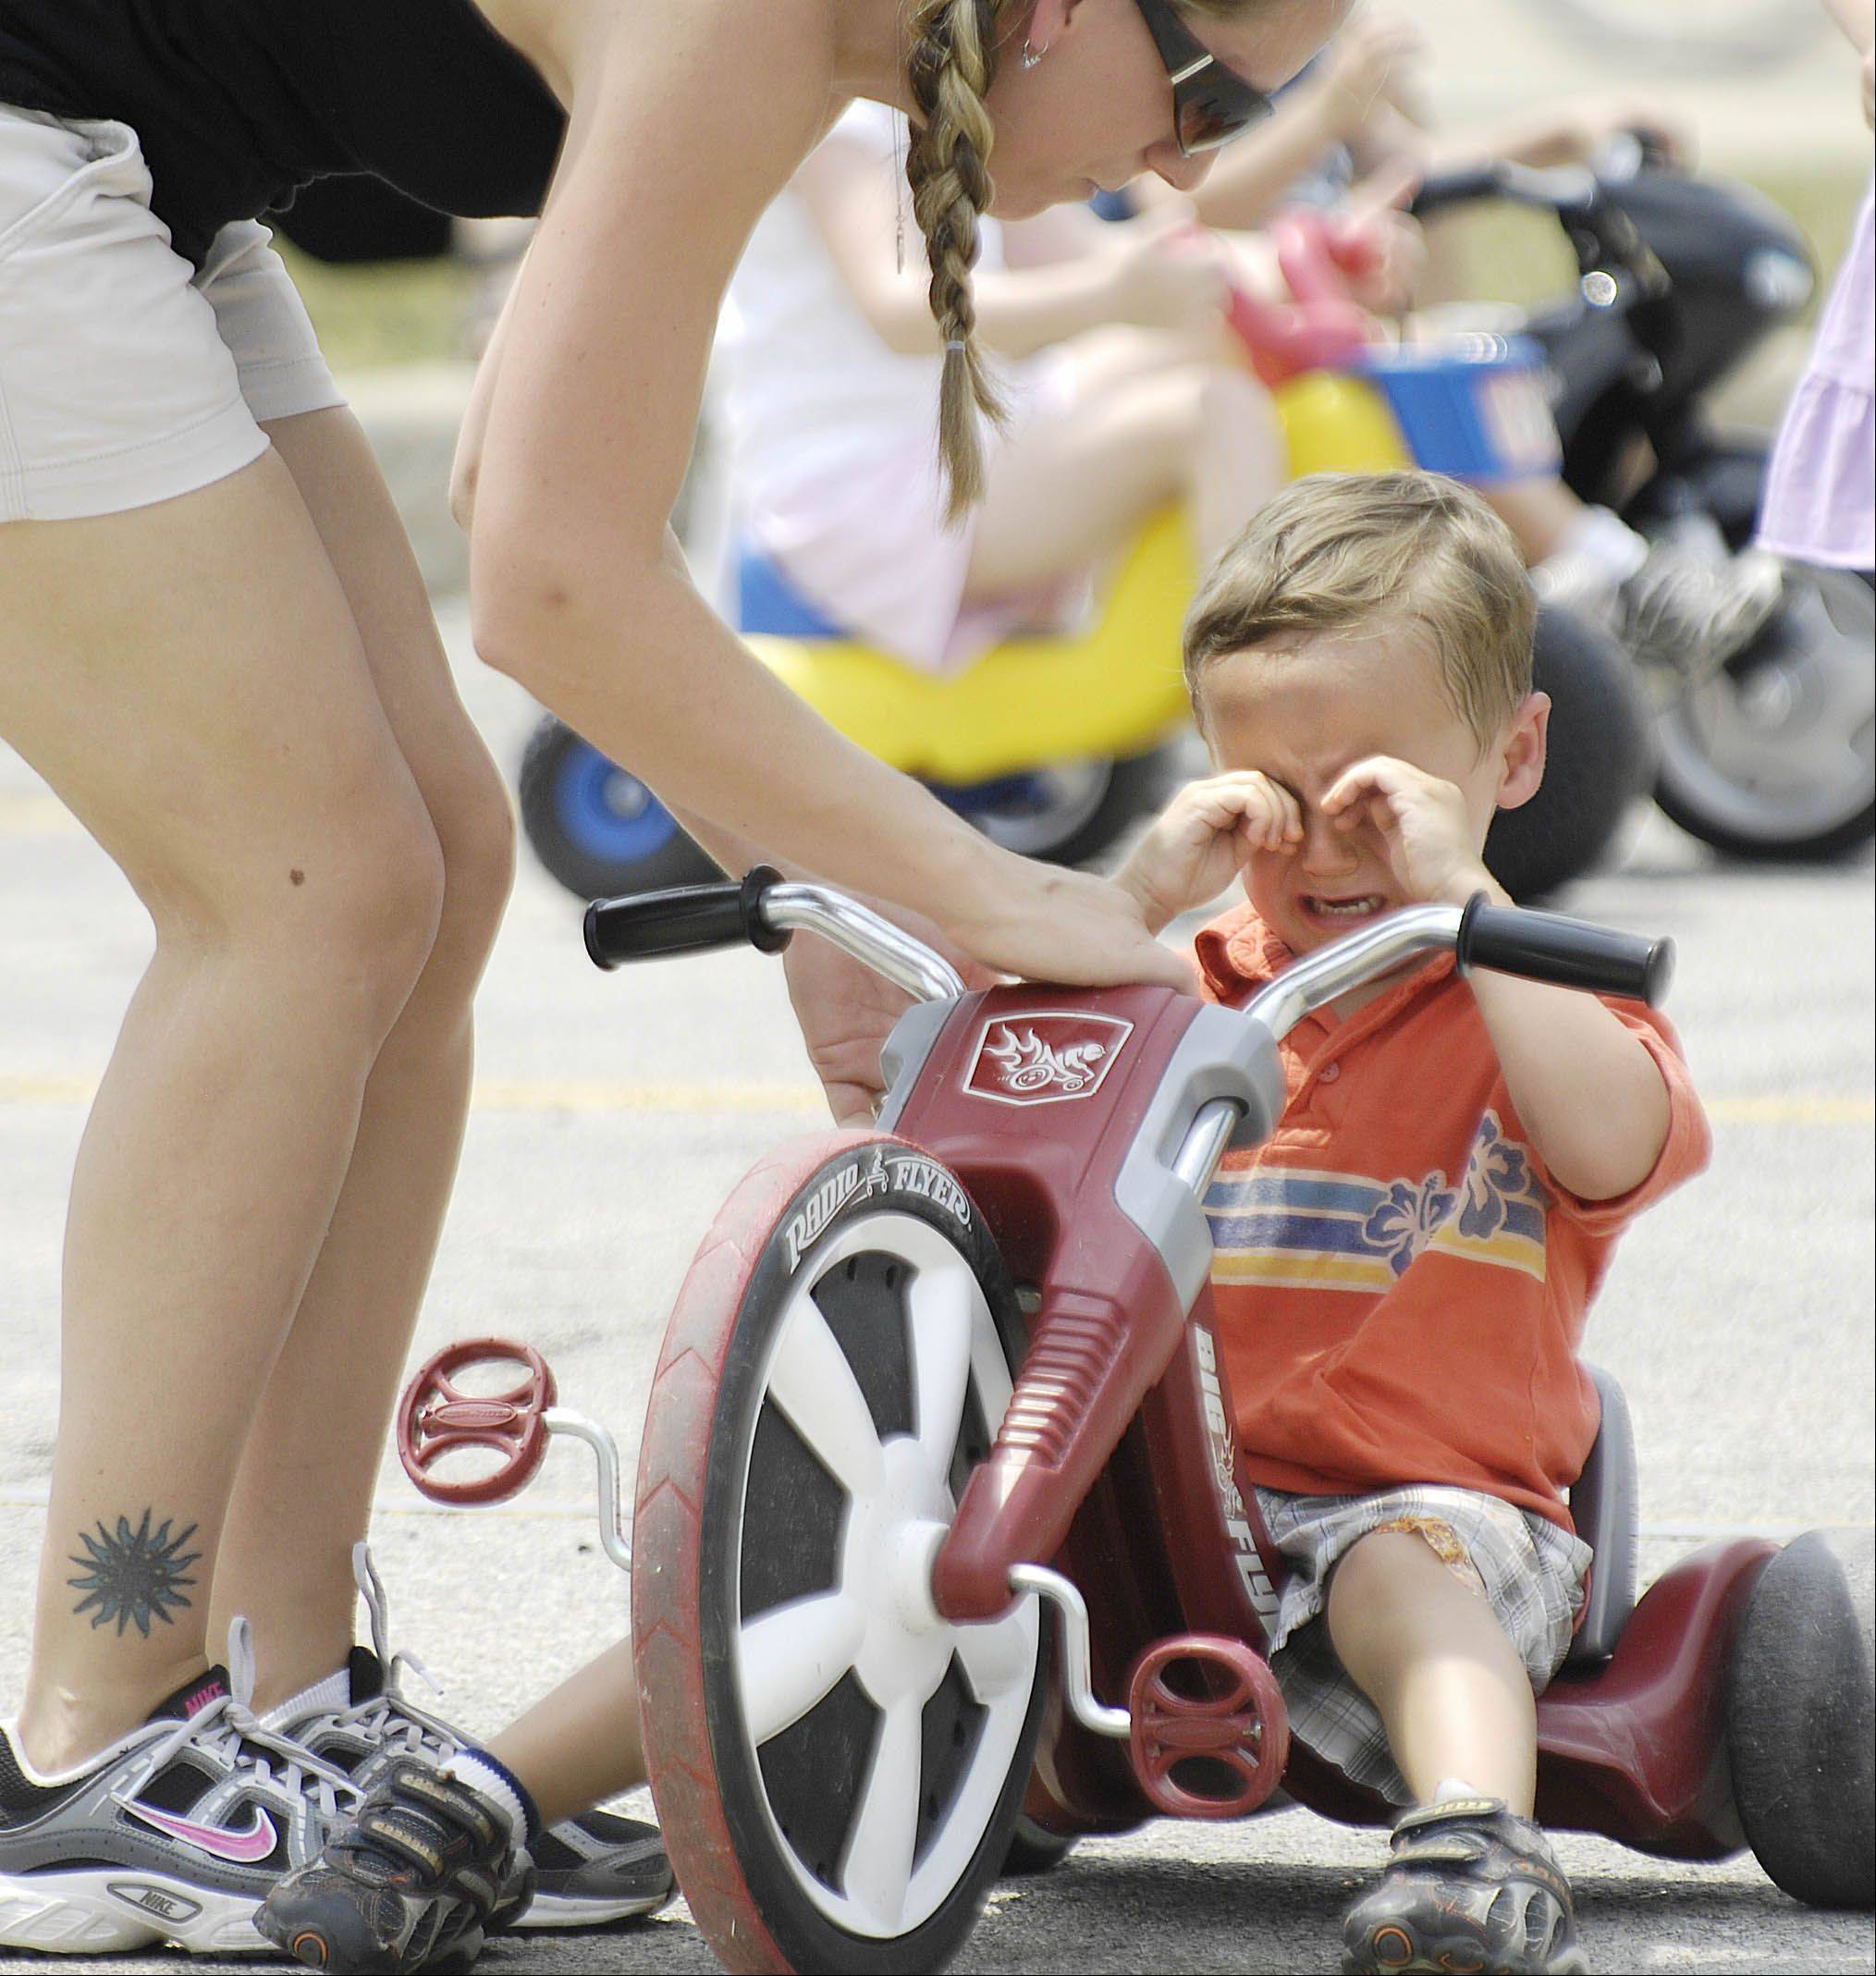 Kyle Vogtmann, 4, reacts at the finish line when he realizes he did not win a trophy in the Lil 500 Big Wheel Race at the Batavia Windmill City Festival Sunday. His mom Colleen promised ice cream anyway.